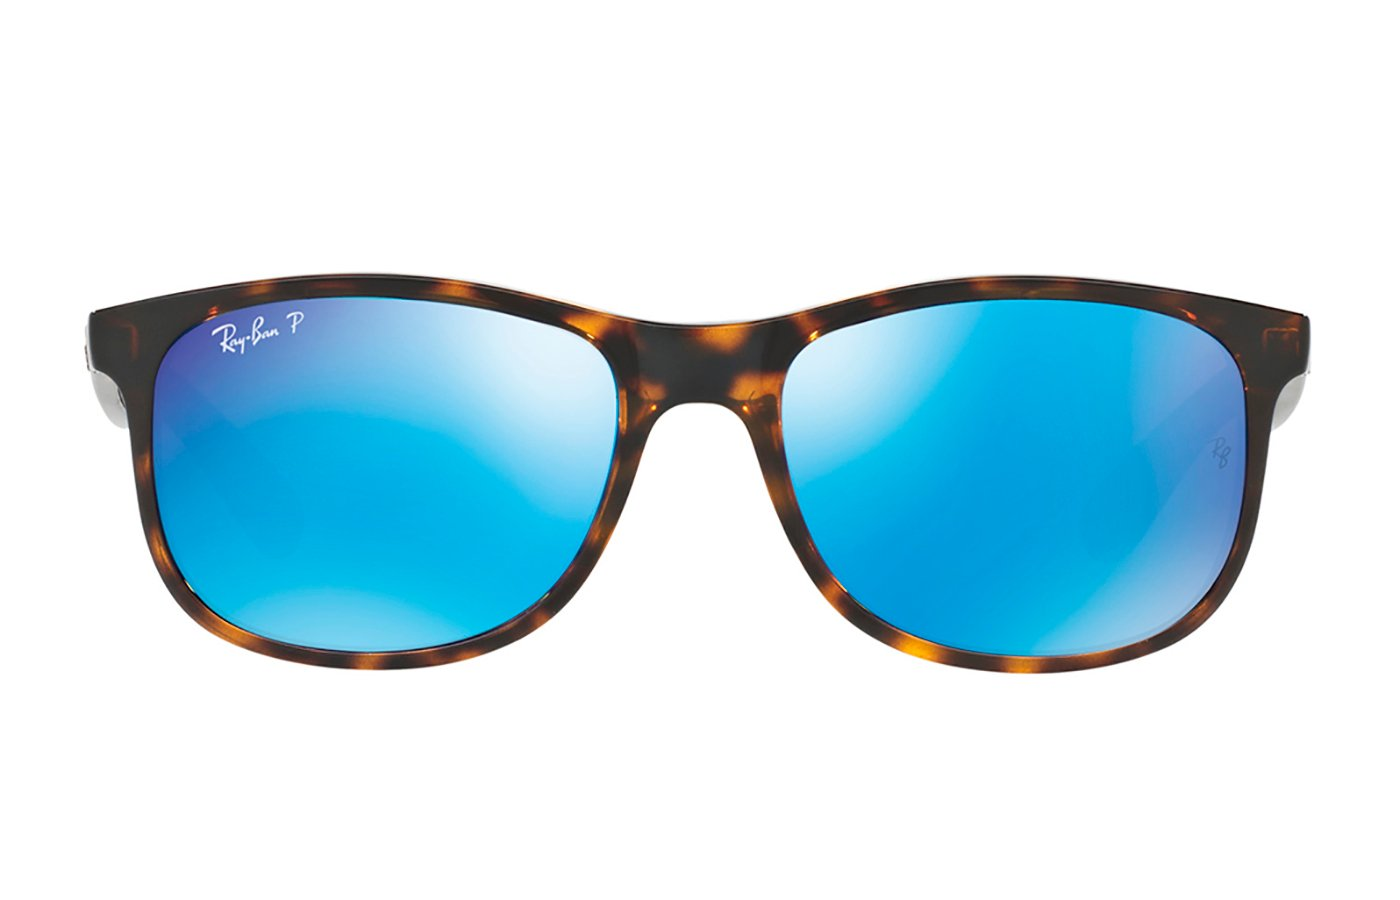 RAY-BAN ANDY 0RB4202 55 710/9R SHINY HAVANA POLARIZADA